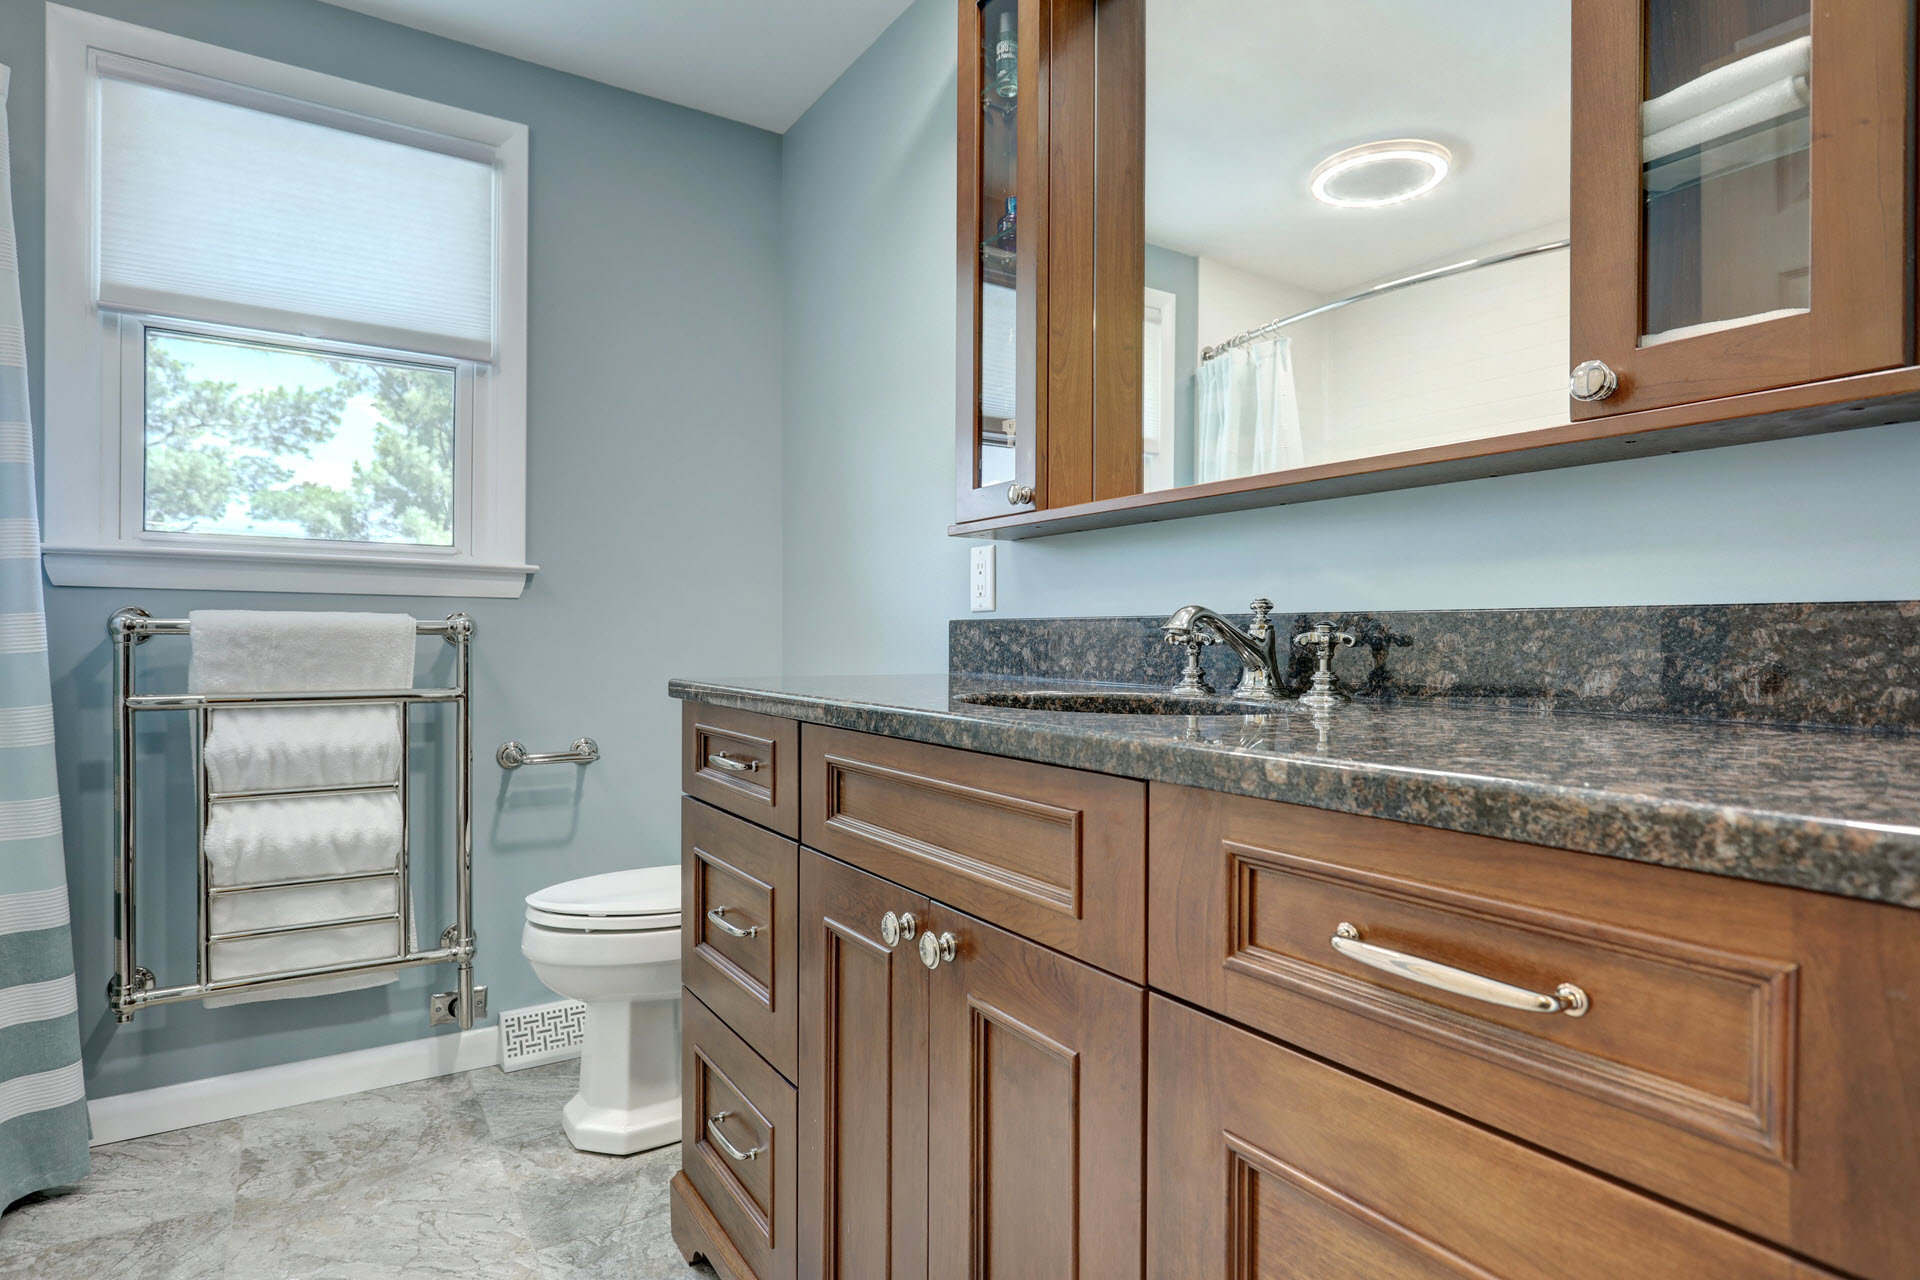 2017 Parade of Homes - Image 003